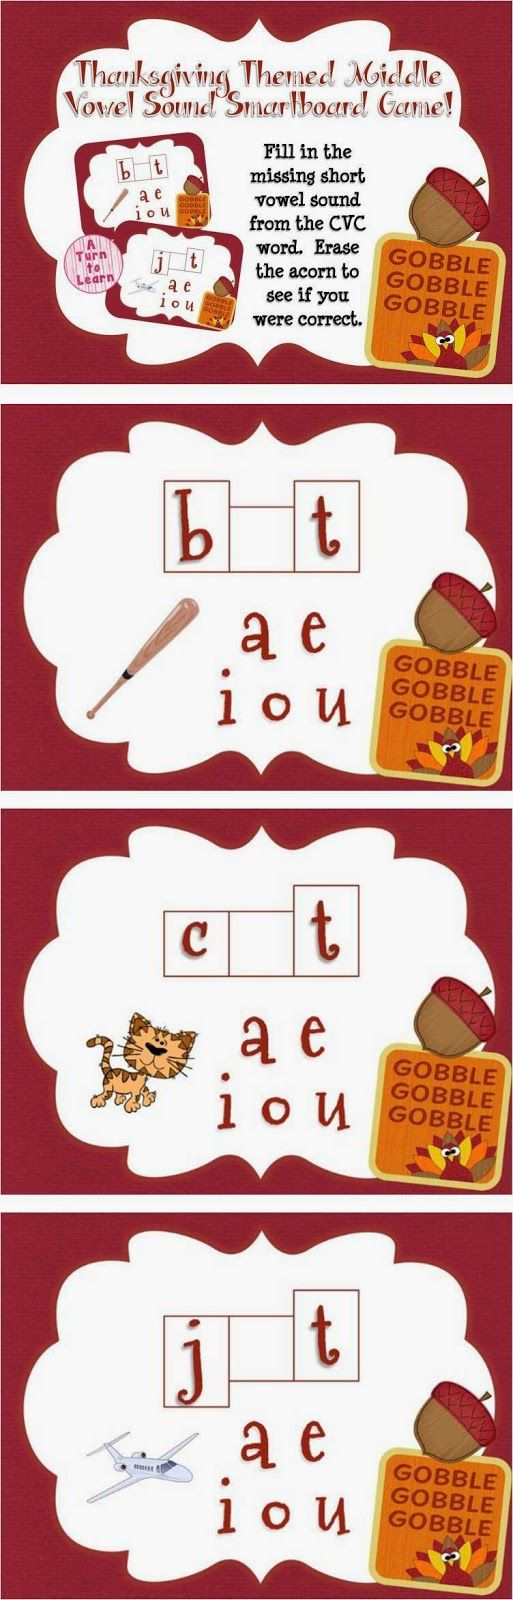 This thanksgiving themed smartboard/promethean board game is the perfect way to have your students practice middle short vowel sounds - just have your students drag the missing vowel into the word shape and erase the acorn to see if you're correct!